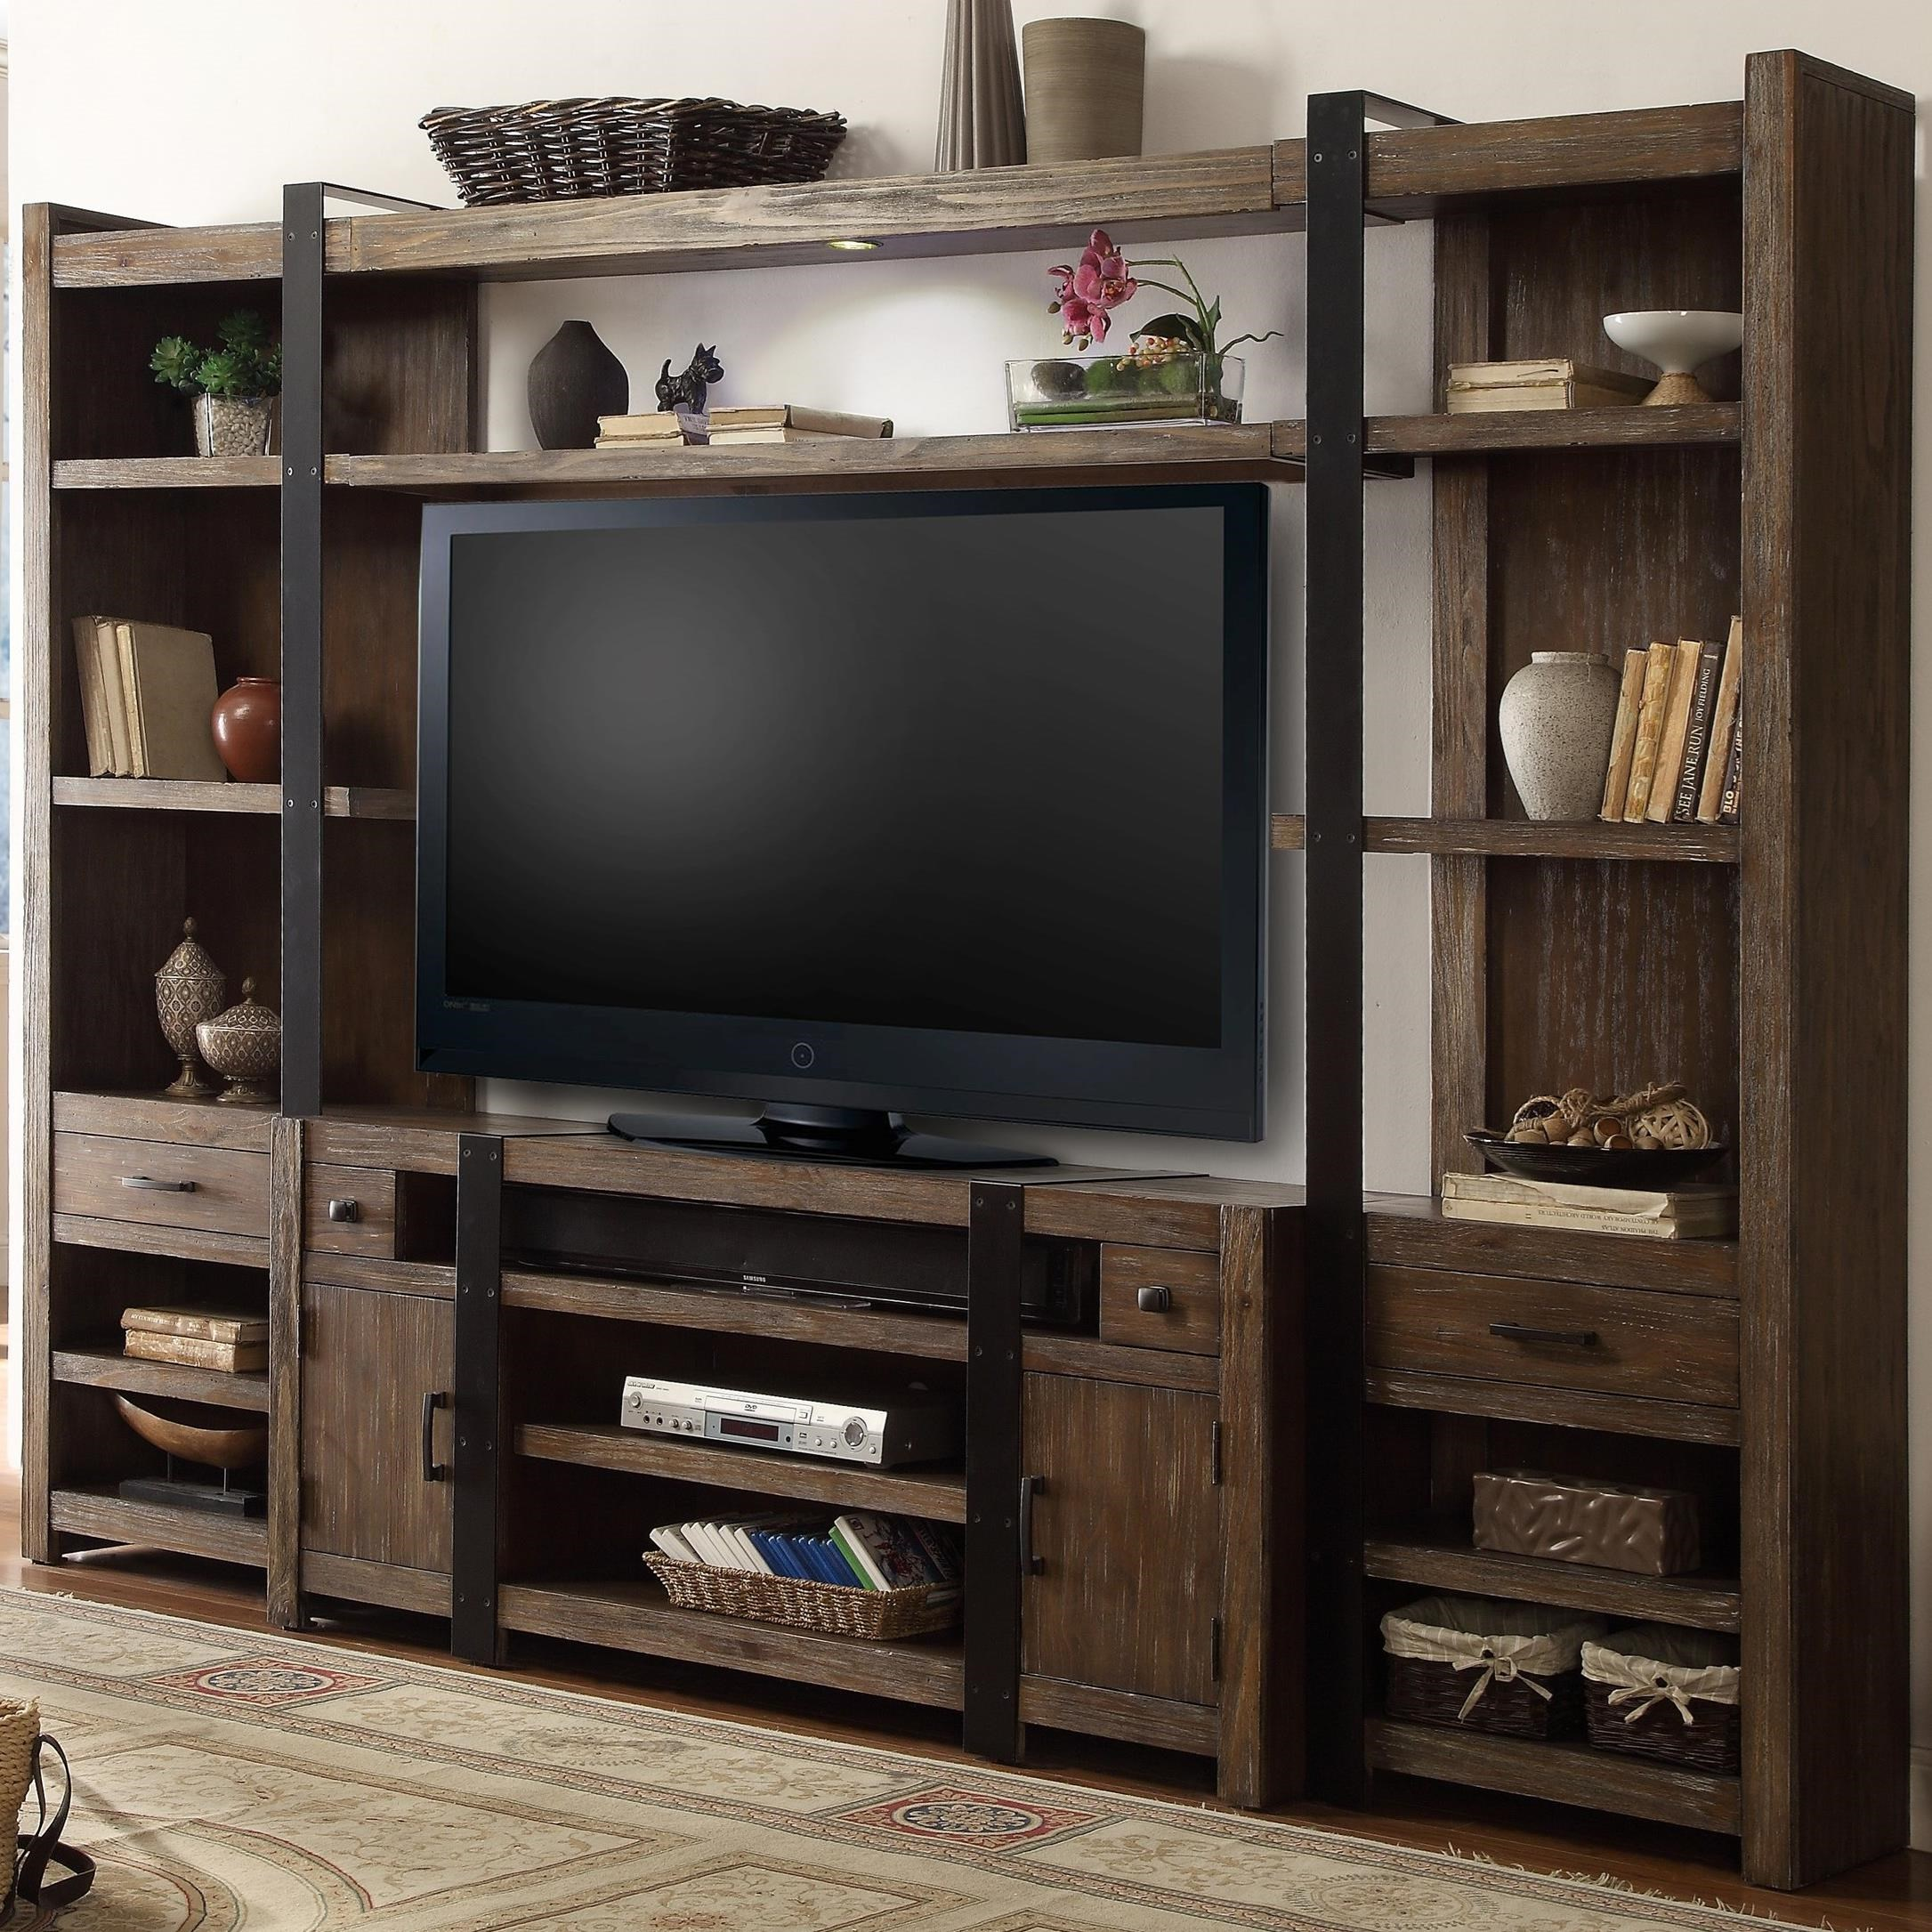 incredible furniture made in bedroom images full columbus country size of about ideas ohio discount mission amish stores dayton on